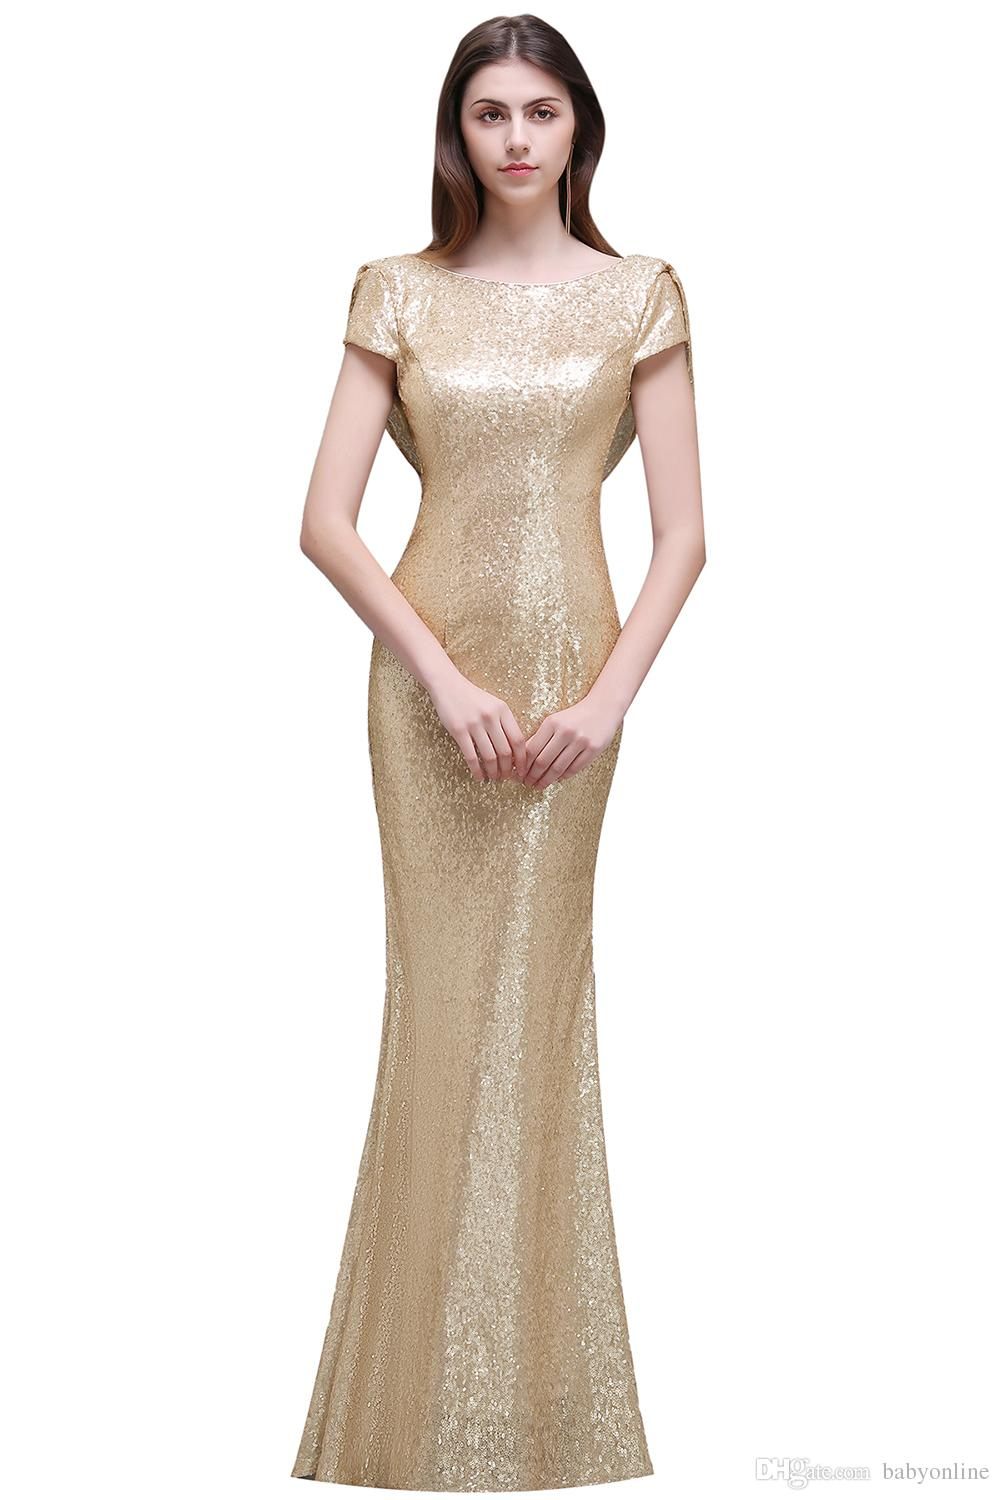 Sparkly Rose Gold Cheap Mermaid Bridesmaid Dresses Short Sleeves Backless Long Beach Sequins Wedding Party Dress Champagne CPS344